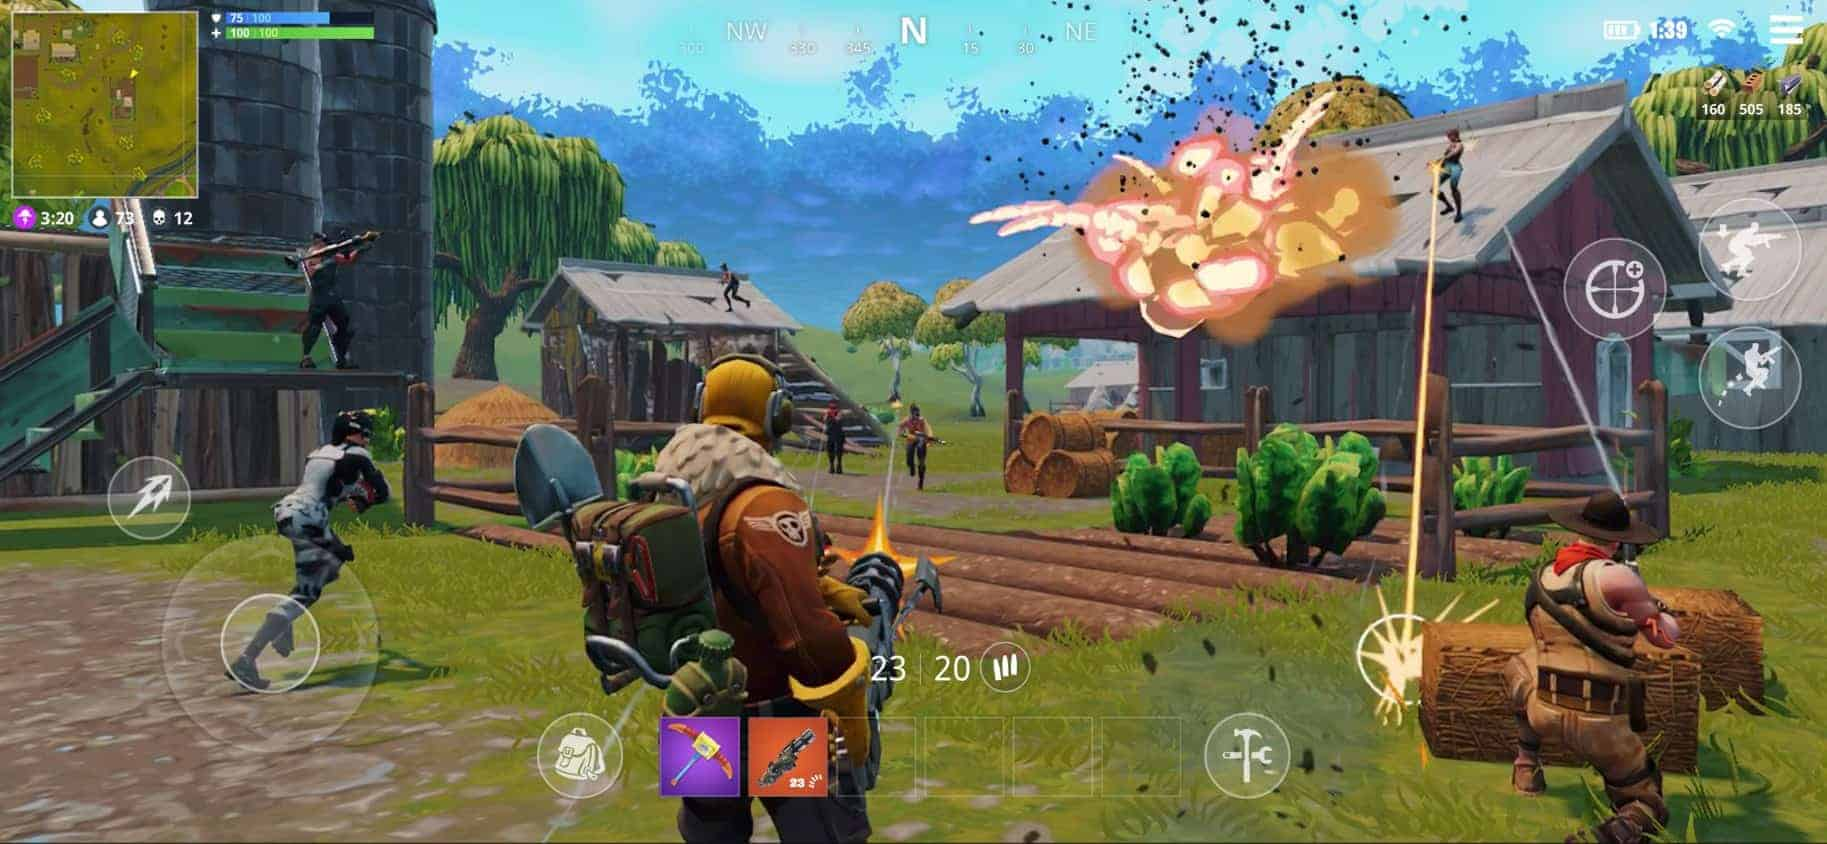 Fortnite Battle Royale Mobile Now Available Globally The